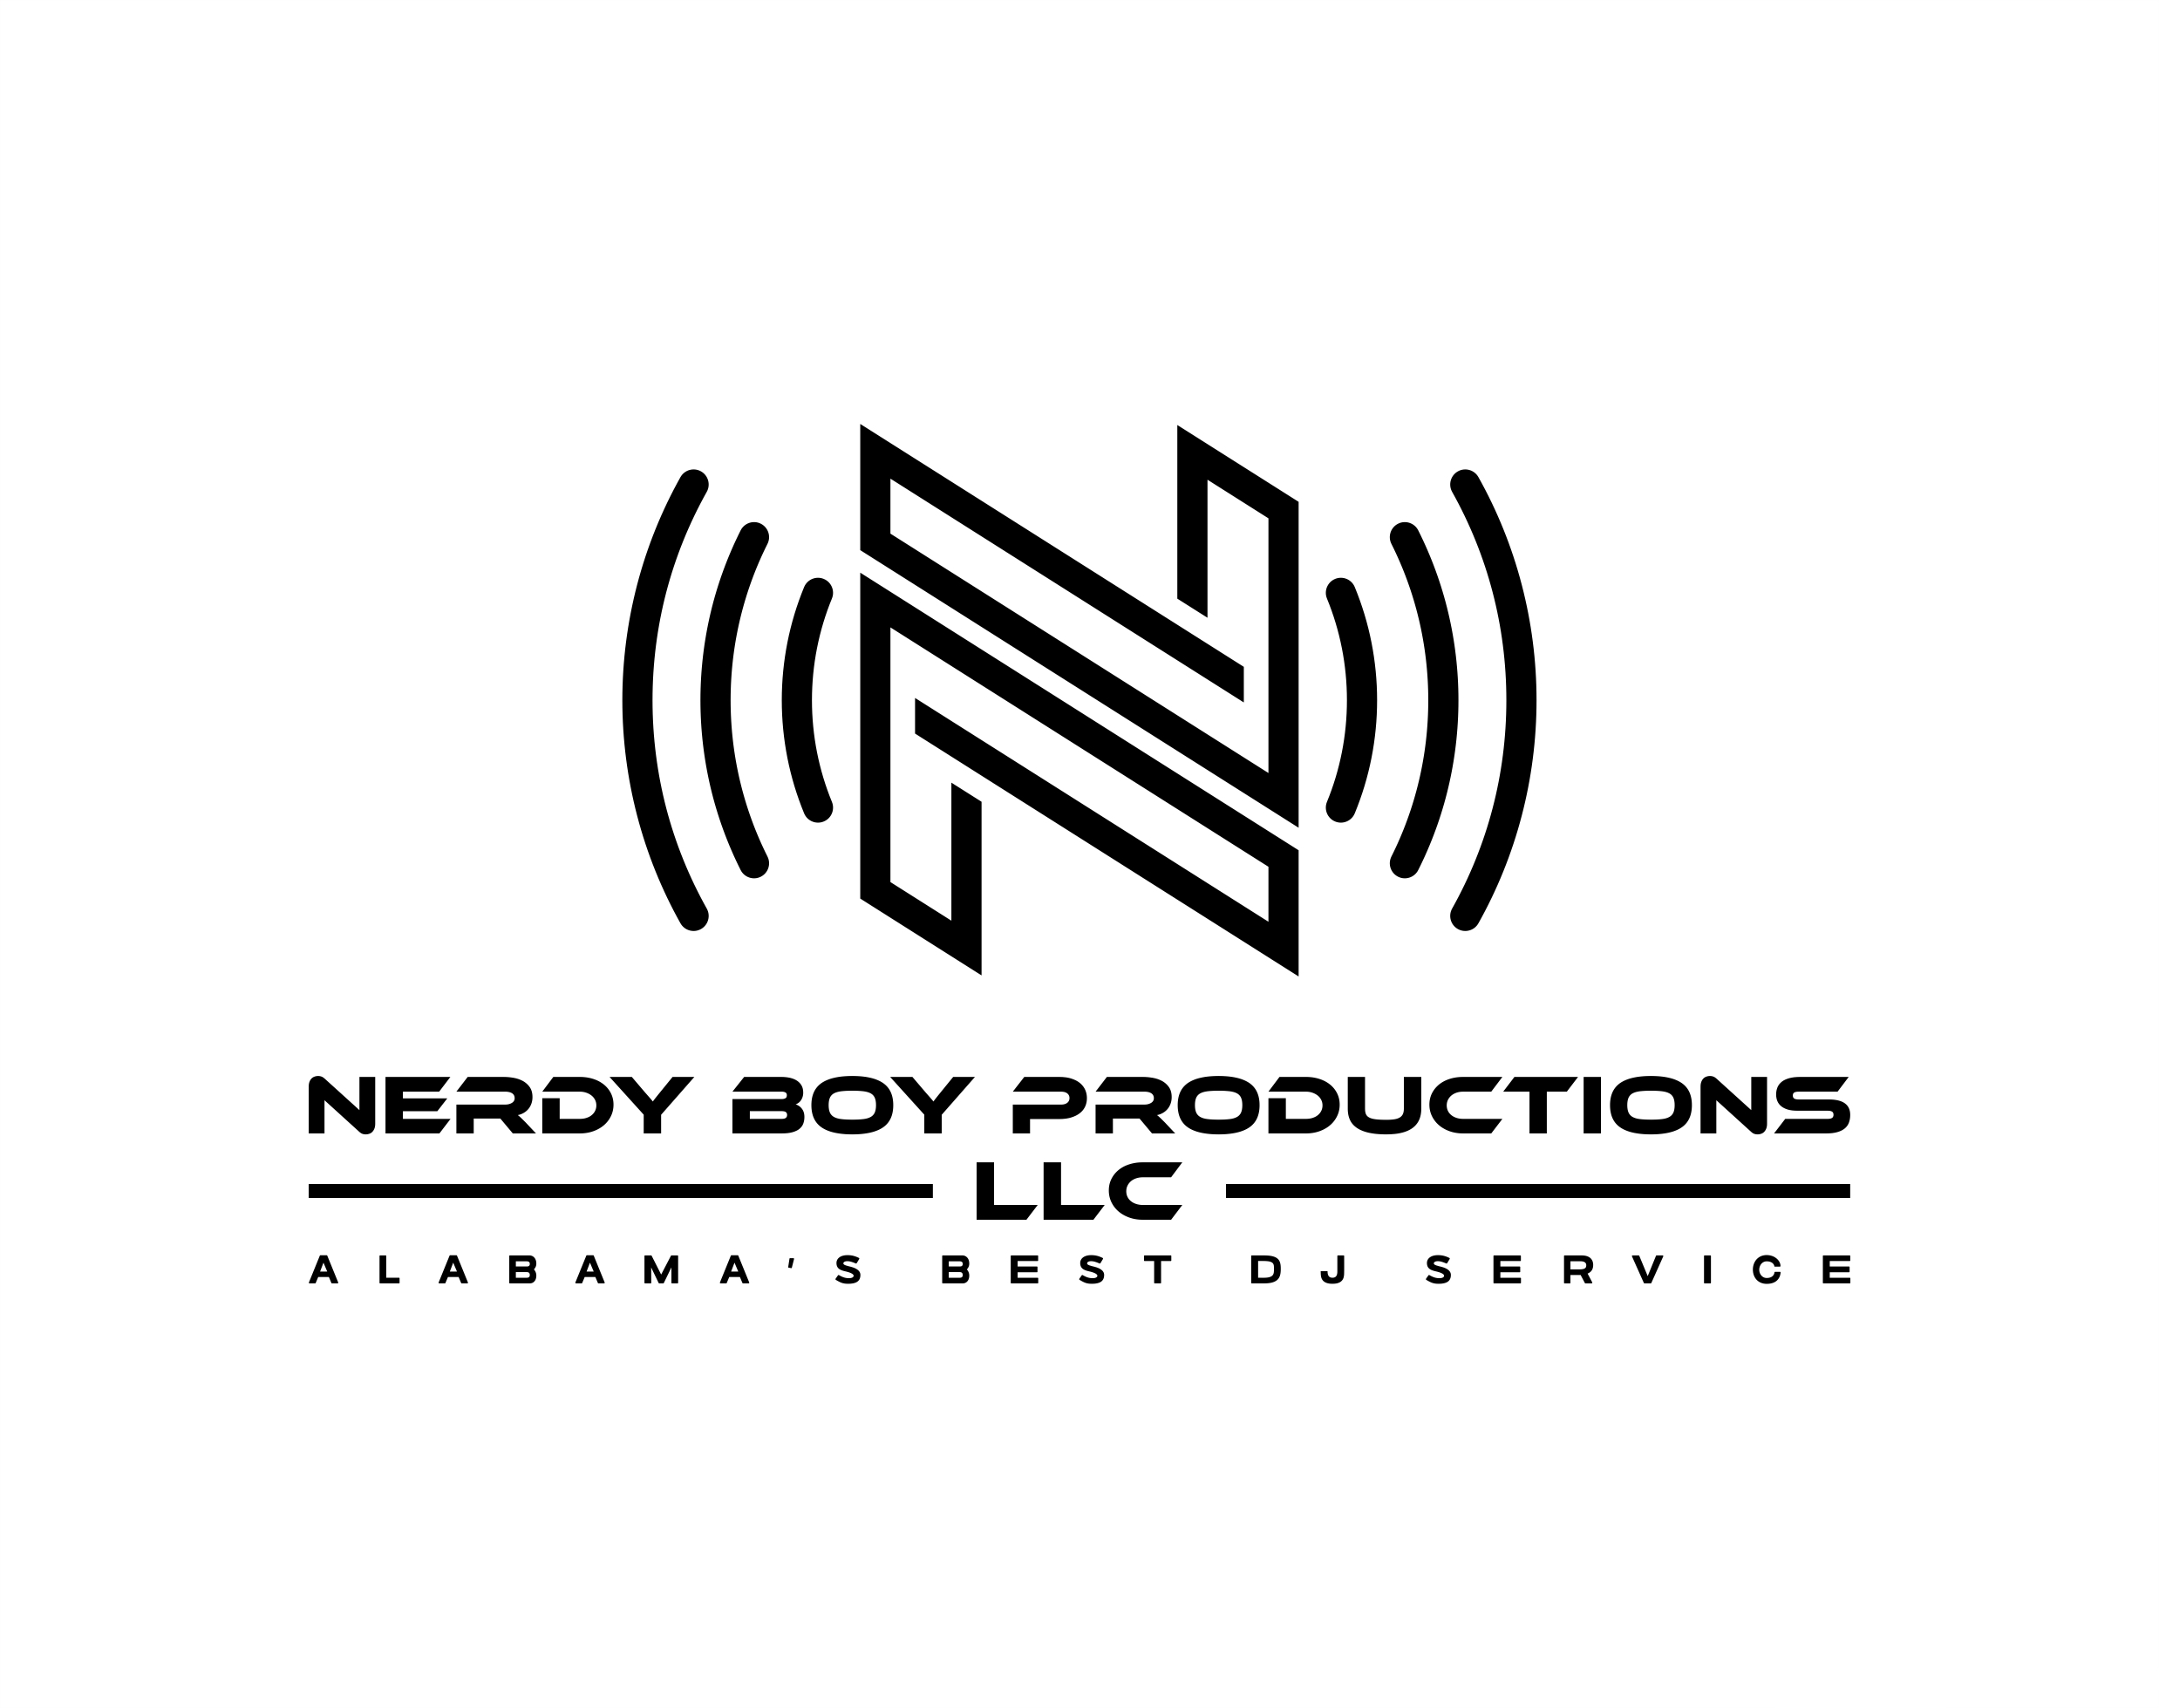 Nerdy_Boy_Productions_LLC New Logo.jpg